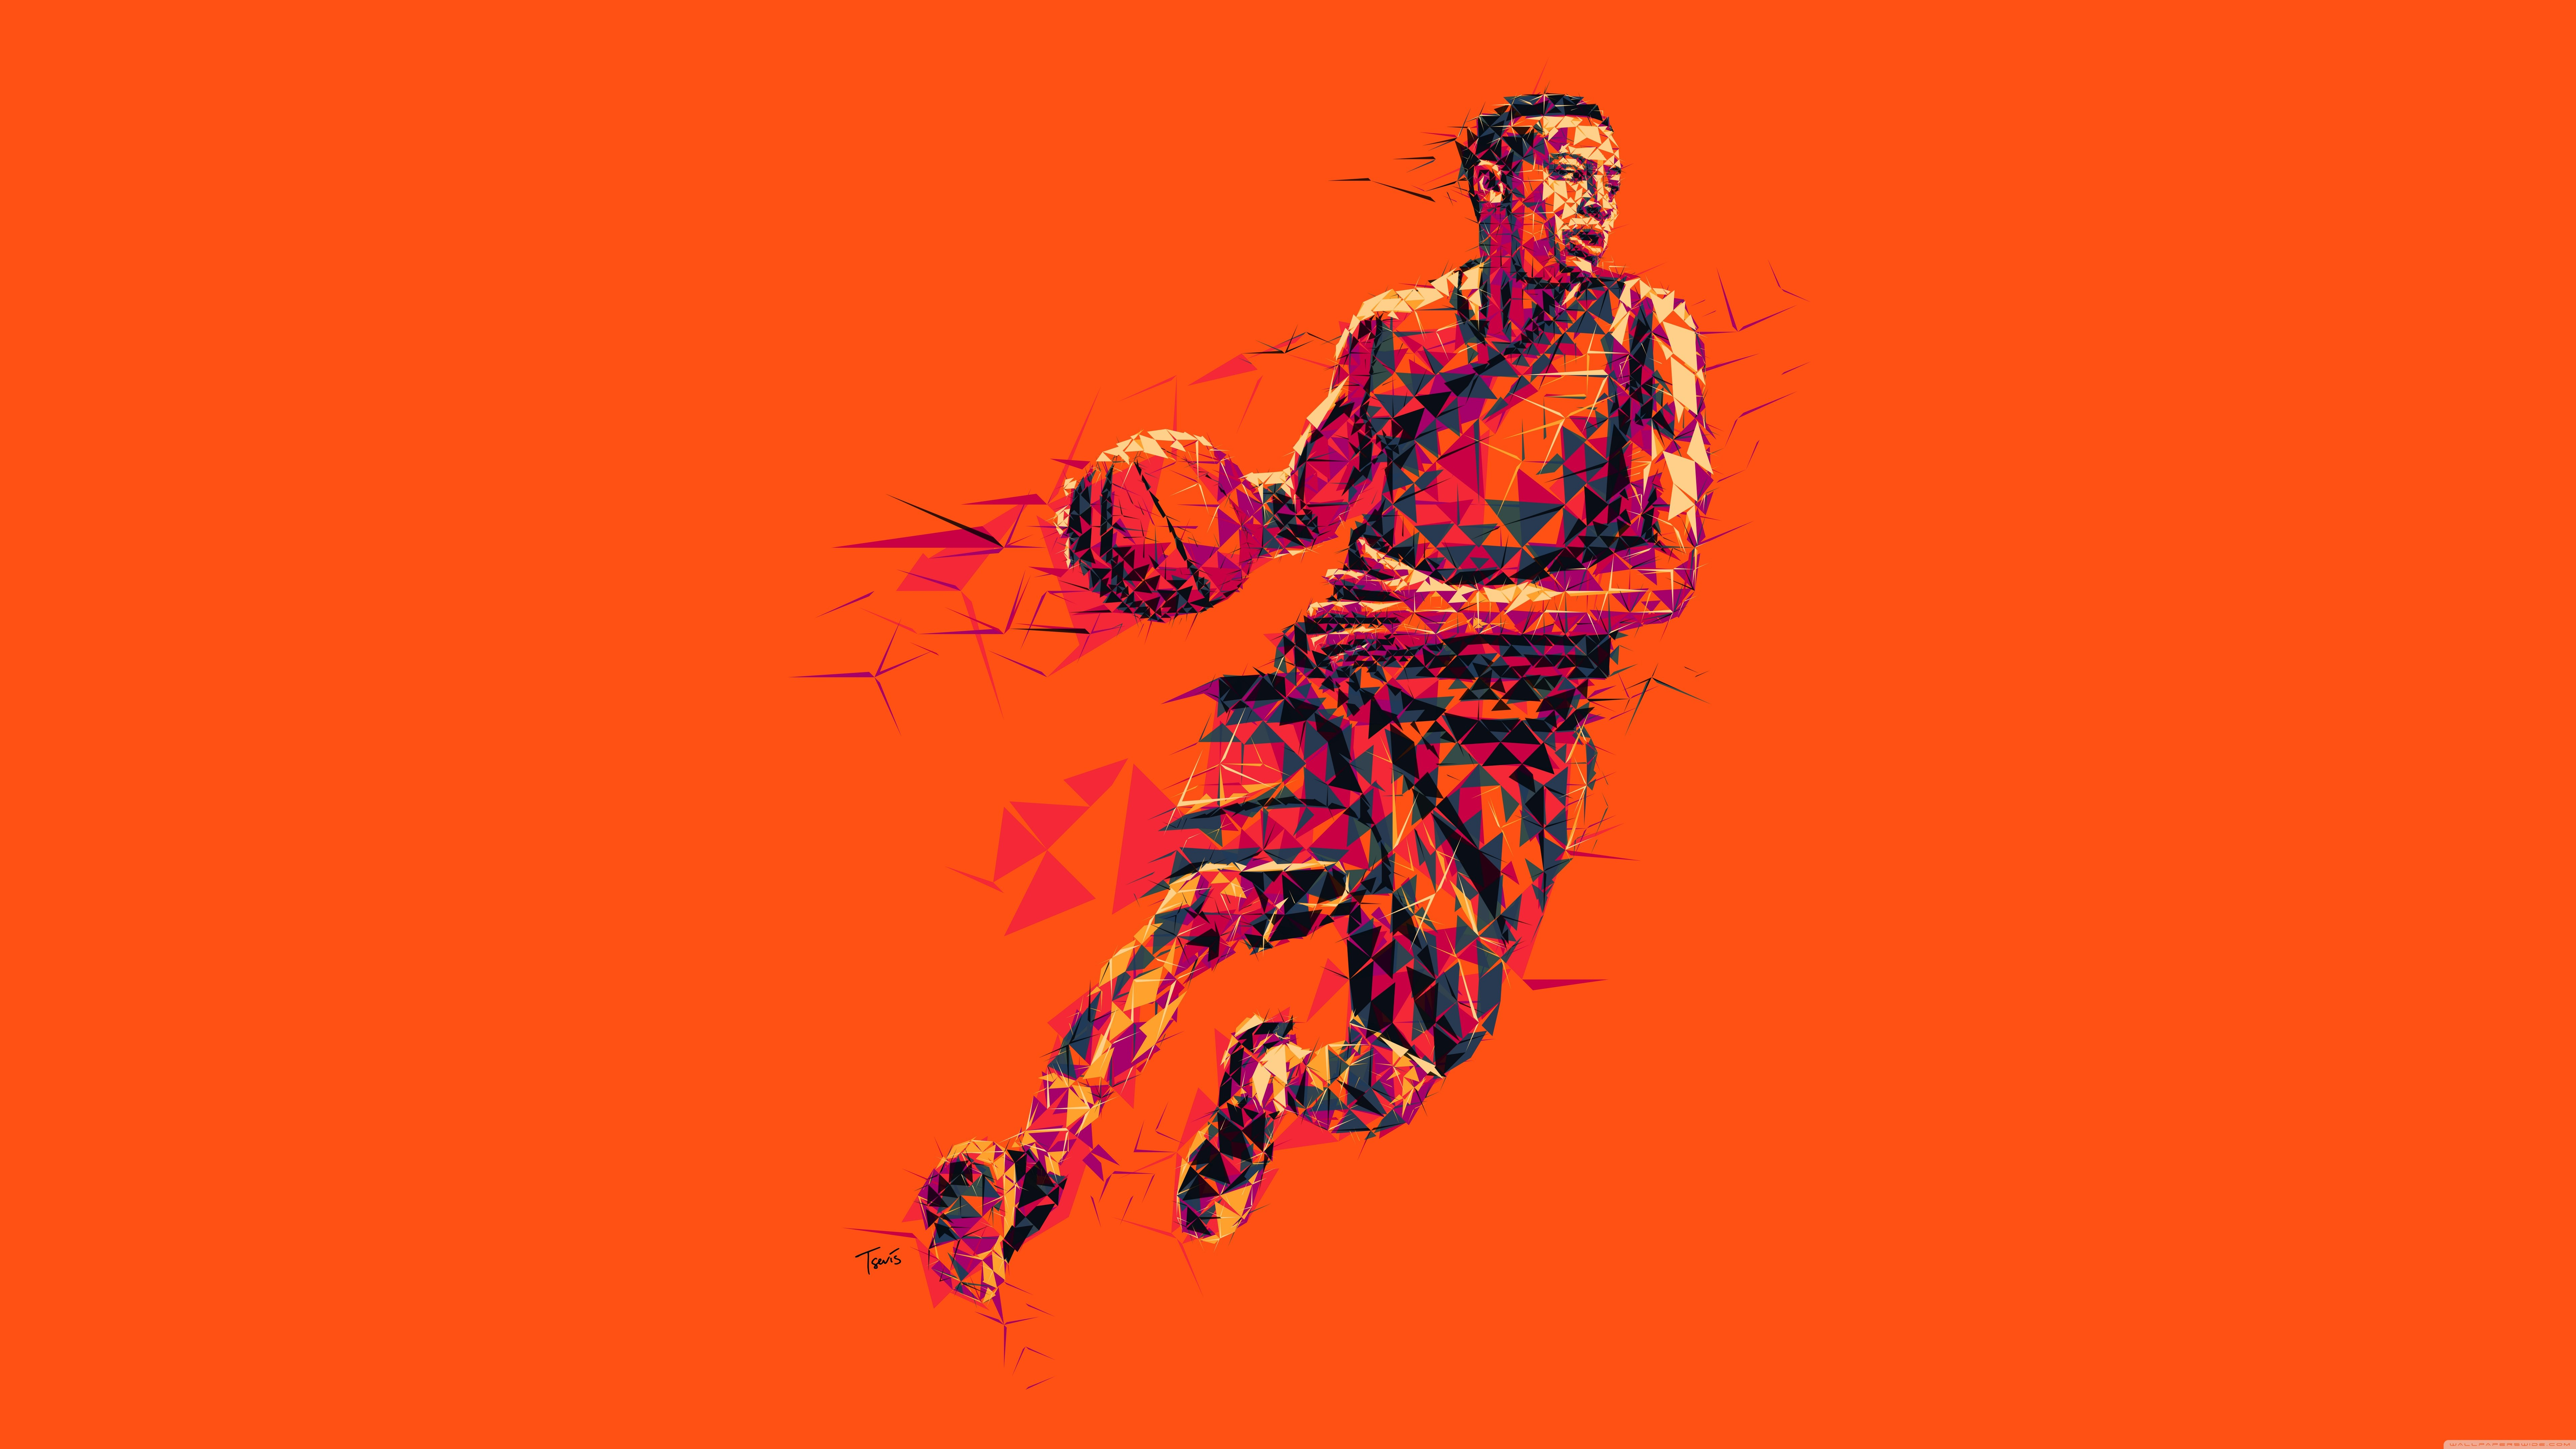 free basketball high quality background id 156579 for ultra hd 8k